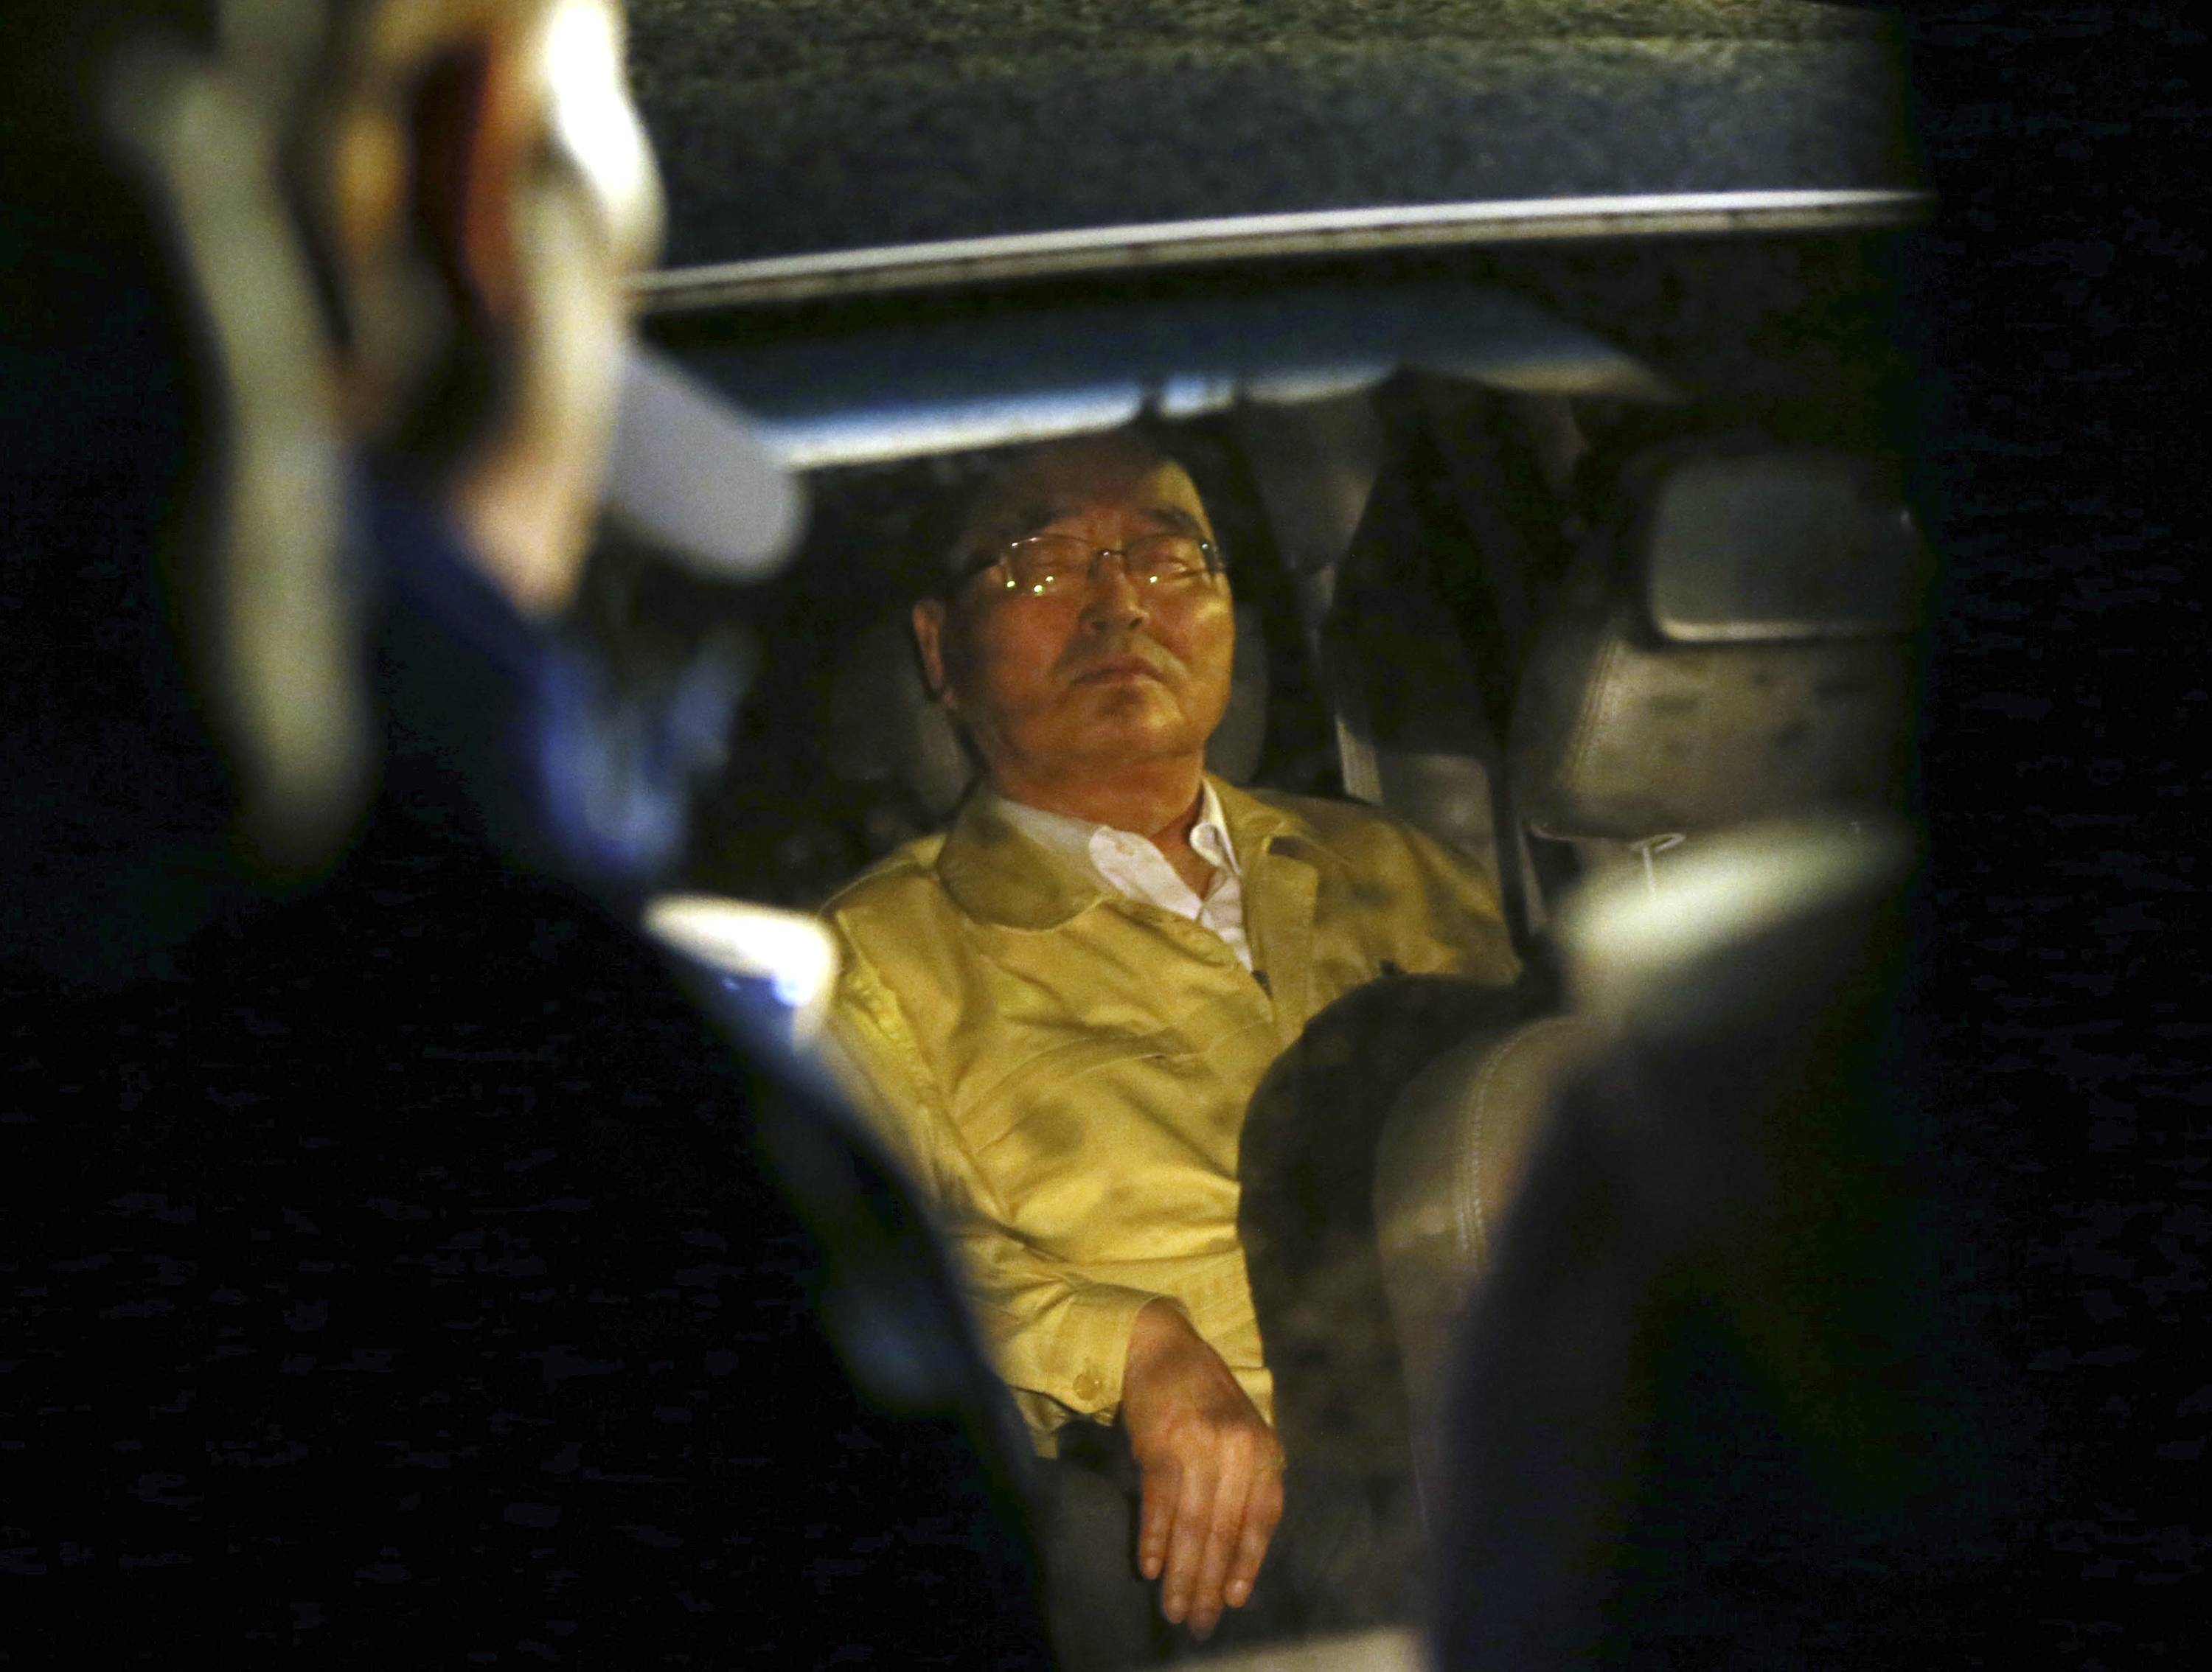 South Korea's Prime Minister Jung Hong-won sits in a car blocked by relatives of a missing passengers aboard the Sewol ferry that sank in the water off the southern coast, during a protest to demand a meeting with President Park Geun-hye, in Jindo, South Korea, April 20.